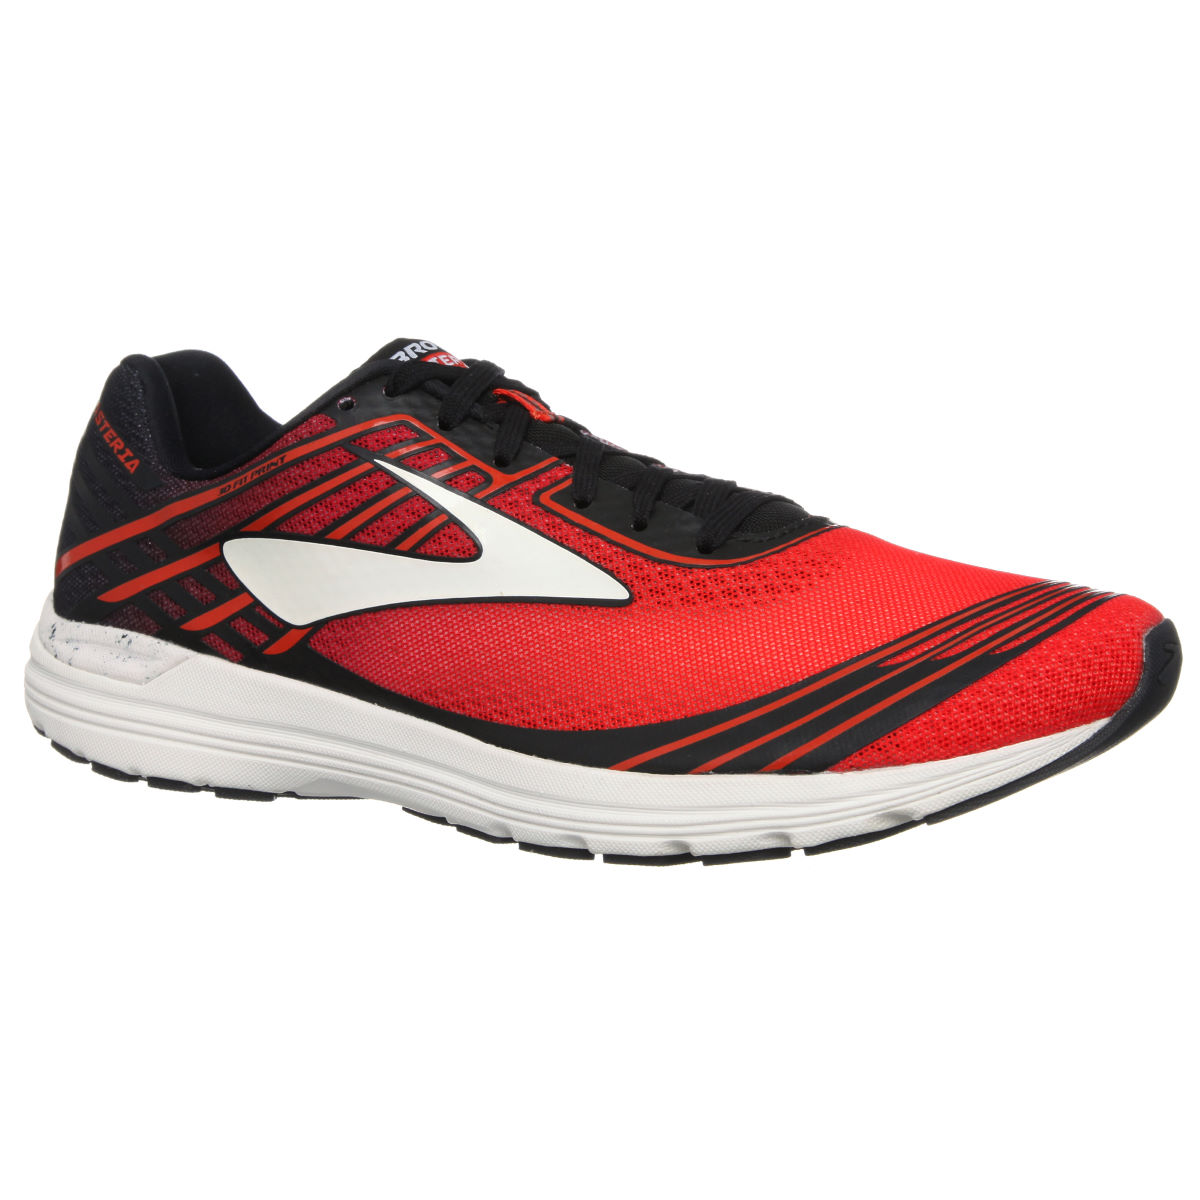 Chaussures Brooks Asteria - UK 11 Rouge/Noir